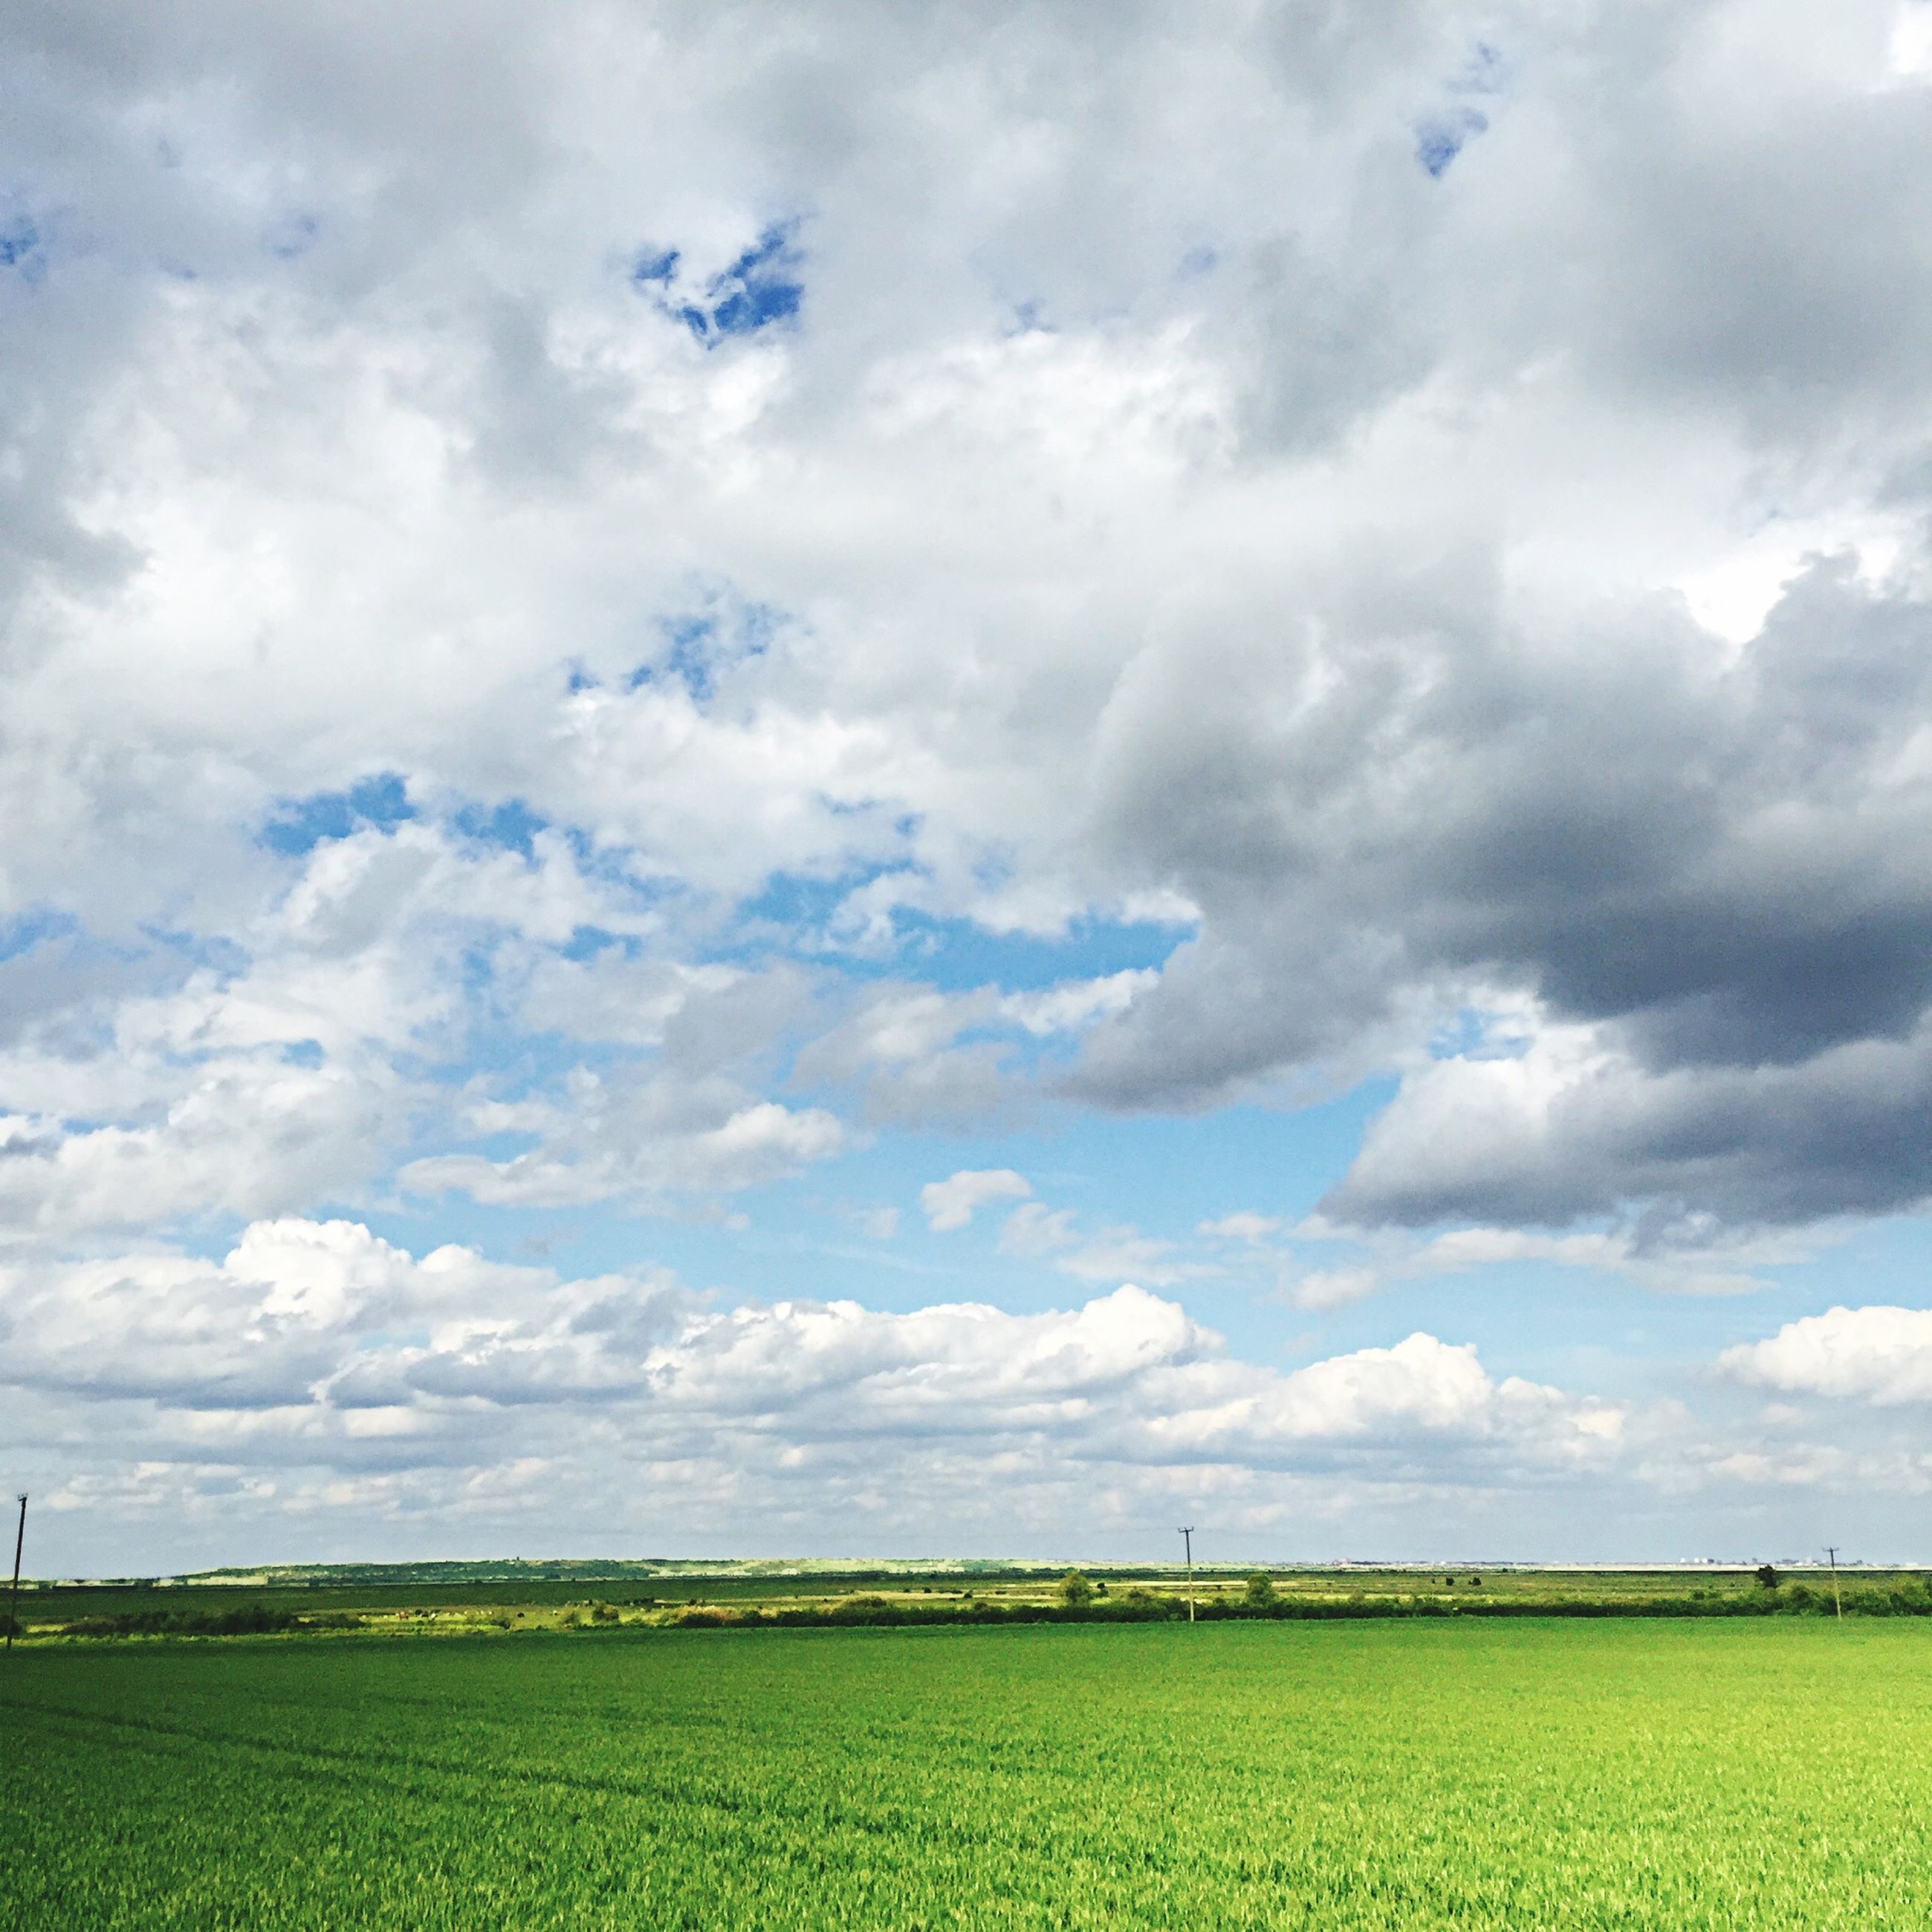 field, agriculture, landscape, rural scene, sky, tranquil scene, farm, tranquility, scenics, beauty in nature, crop, nature, cloud - sky, growth, horizon over land, cultivated land, cloudy, cloud, grass, day